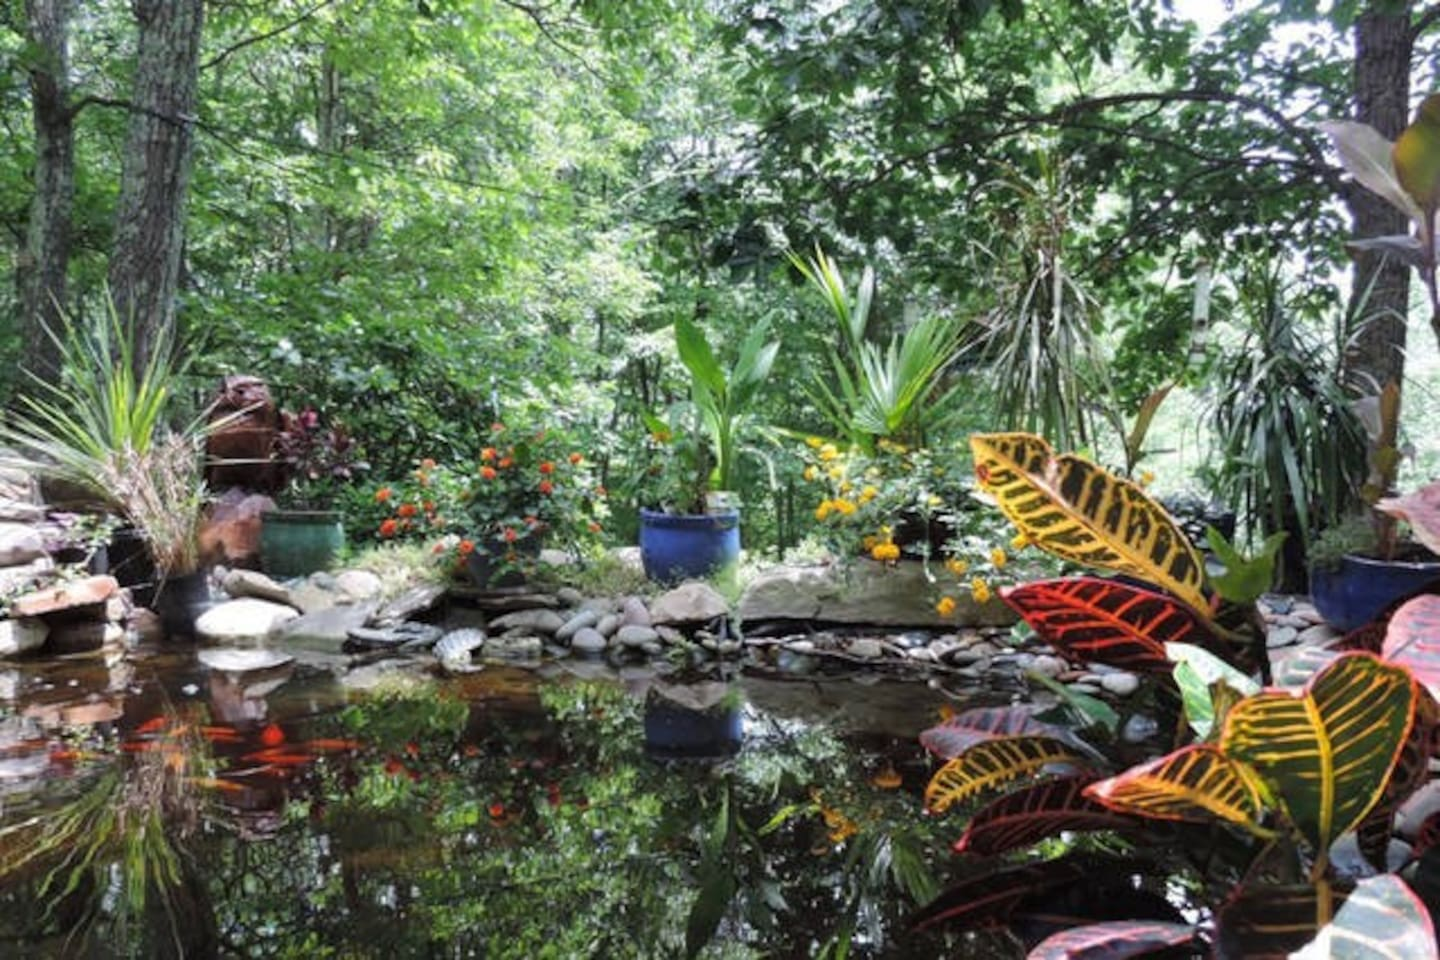 Tropical flowers, blooming in the heat of summer, surround the Koi pond.